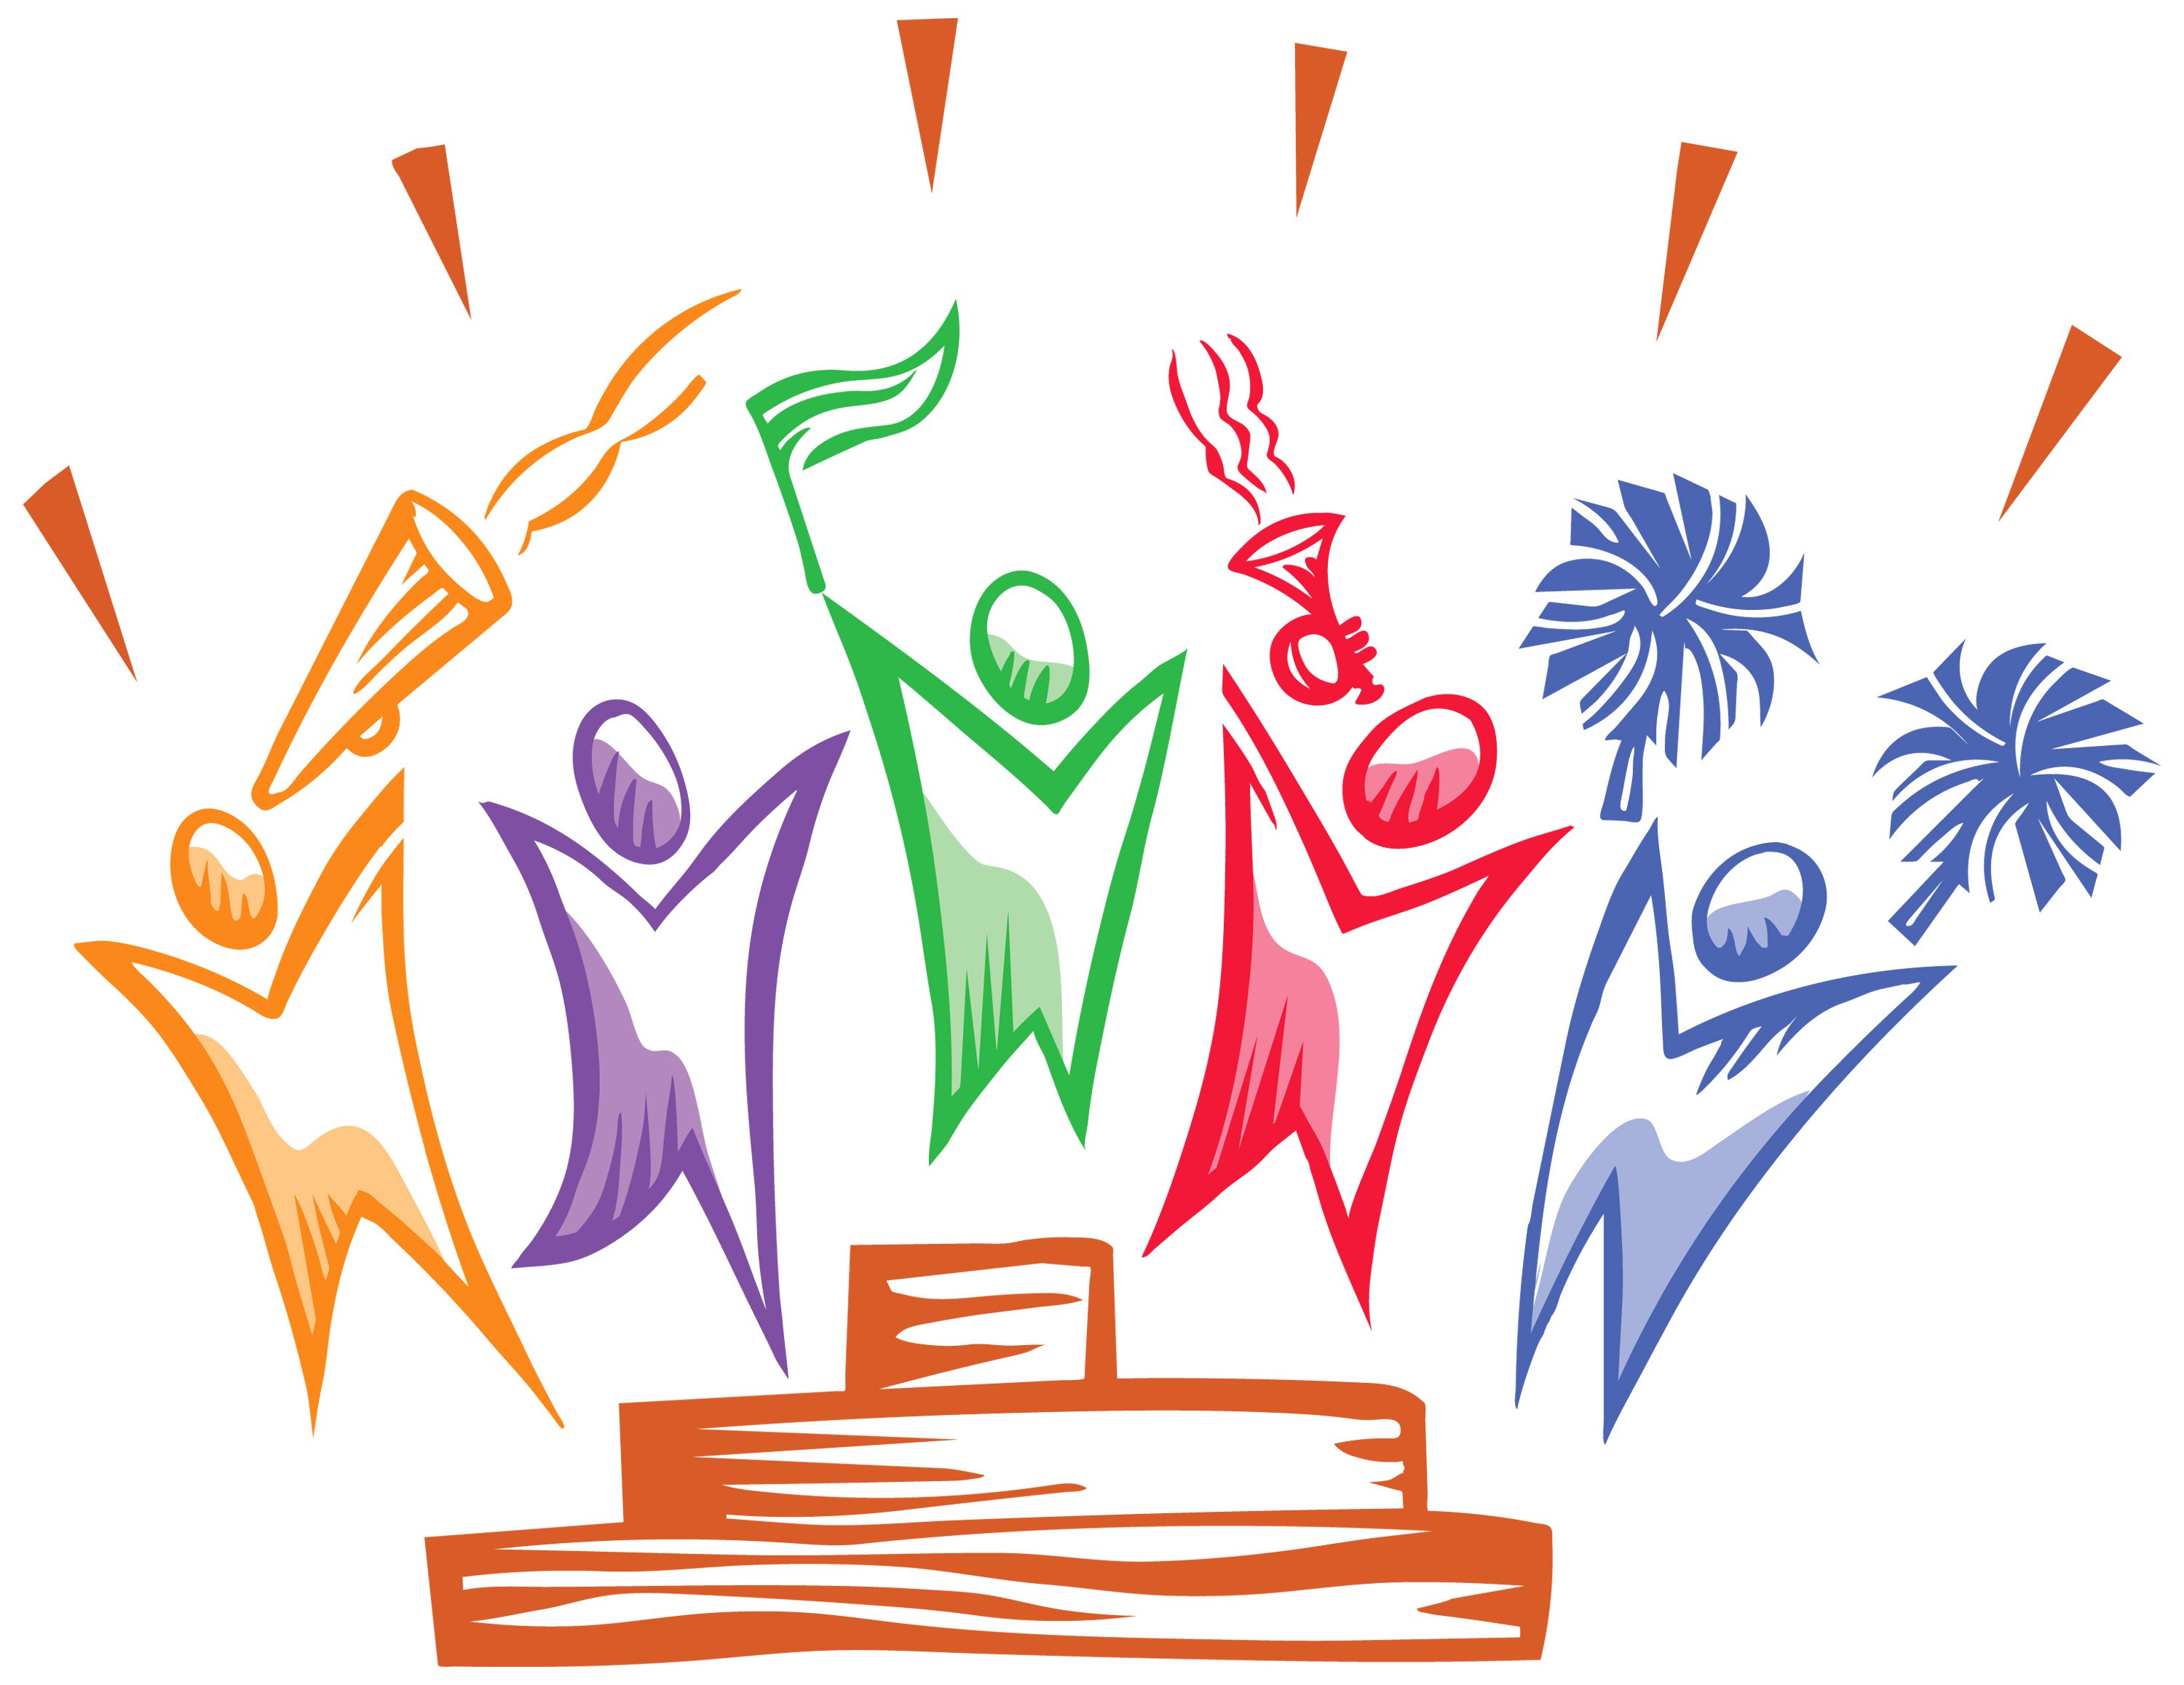 3000x2315 Team Celebration Clipart A Team Of Celebrate The New Free Image 3